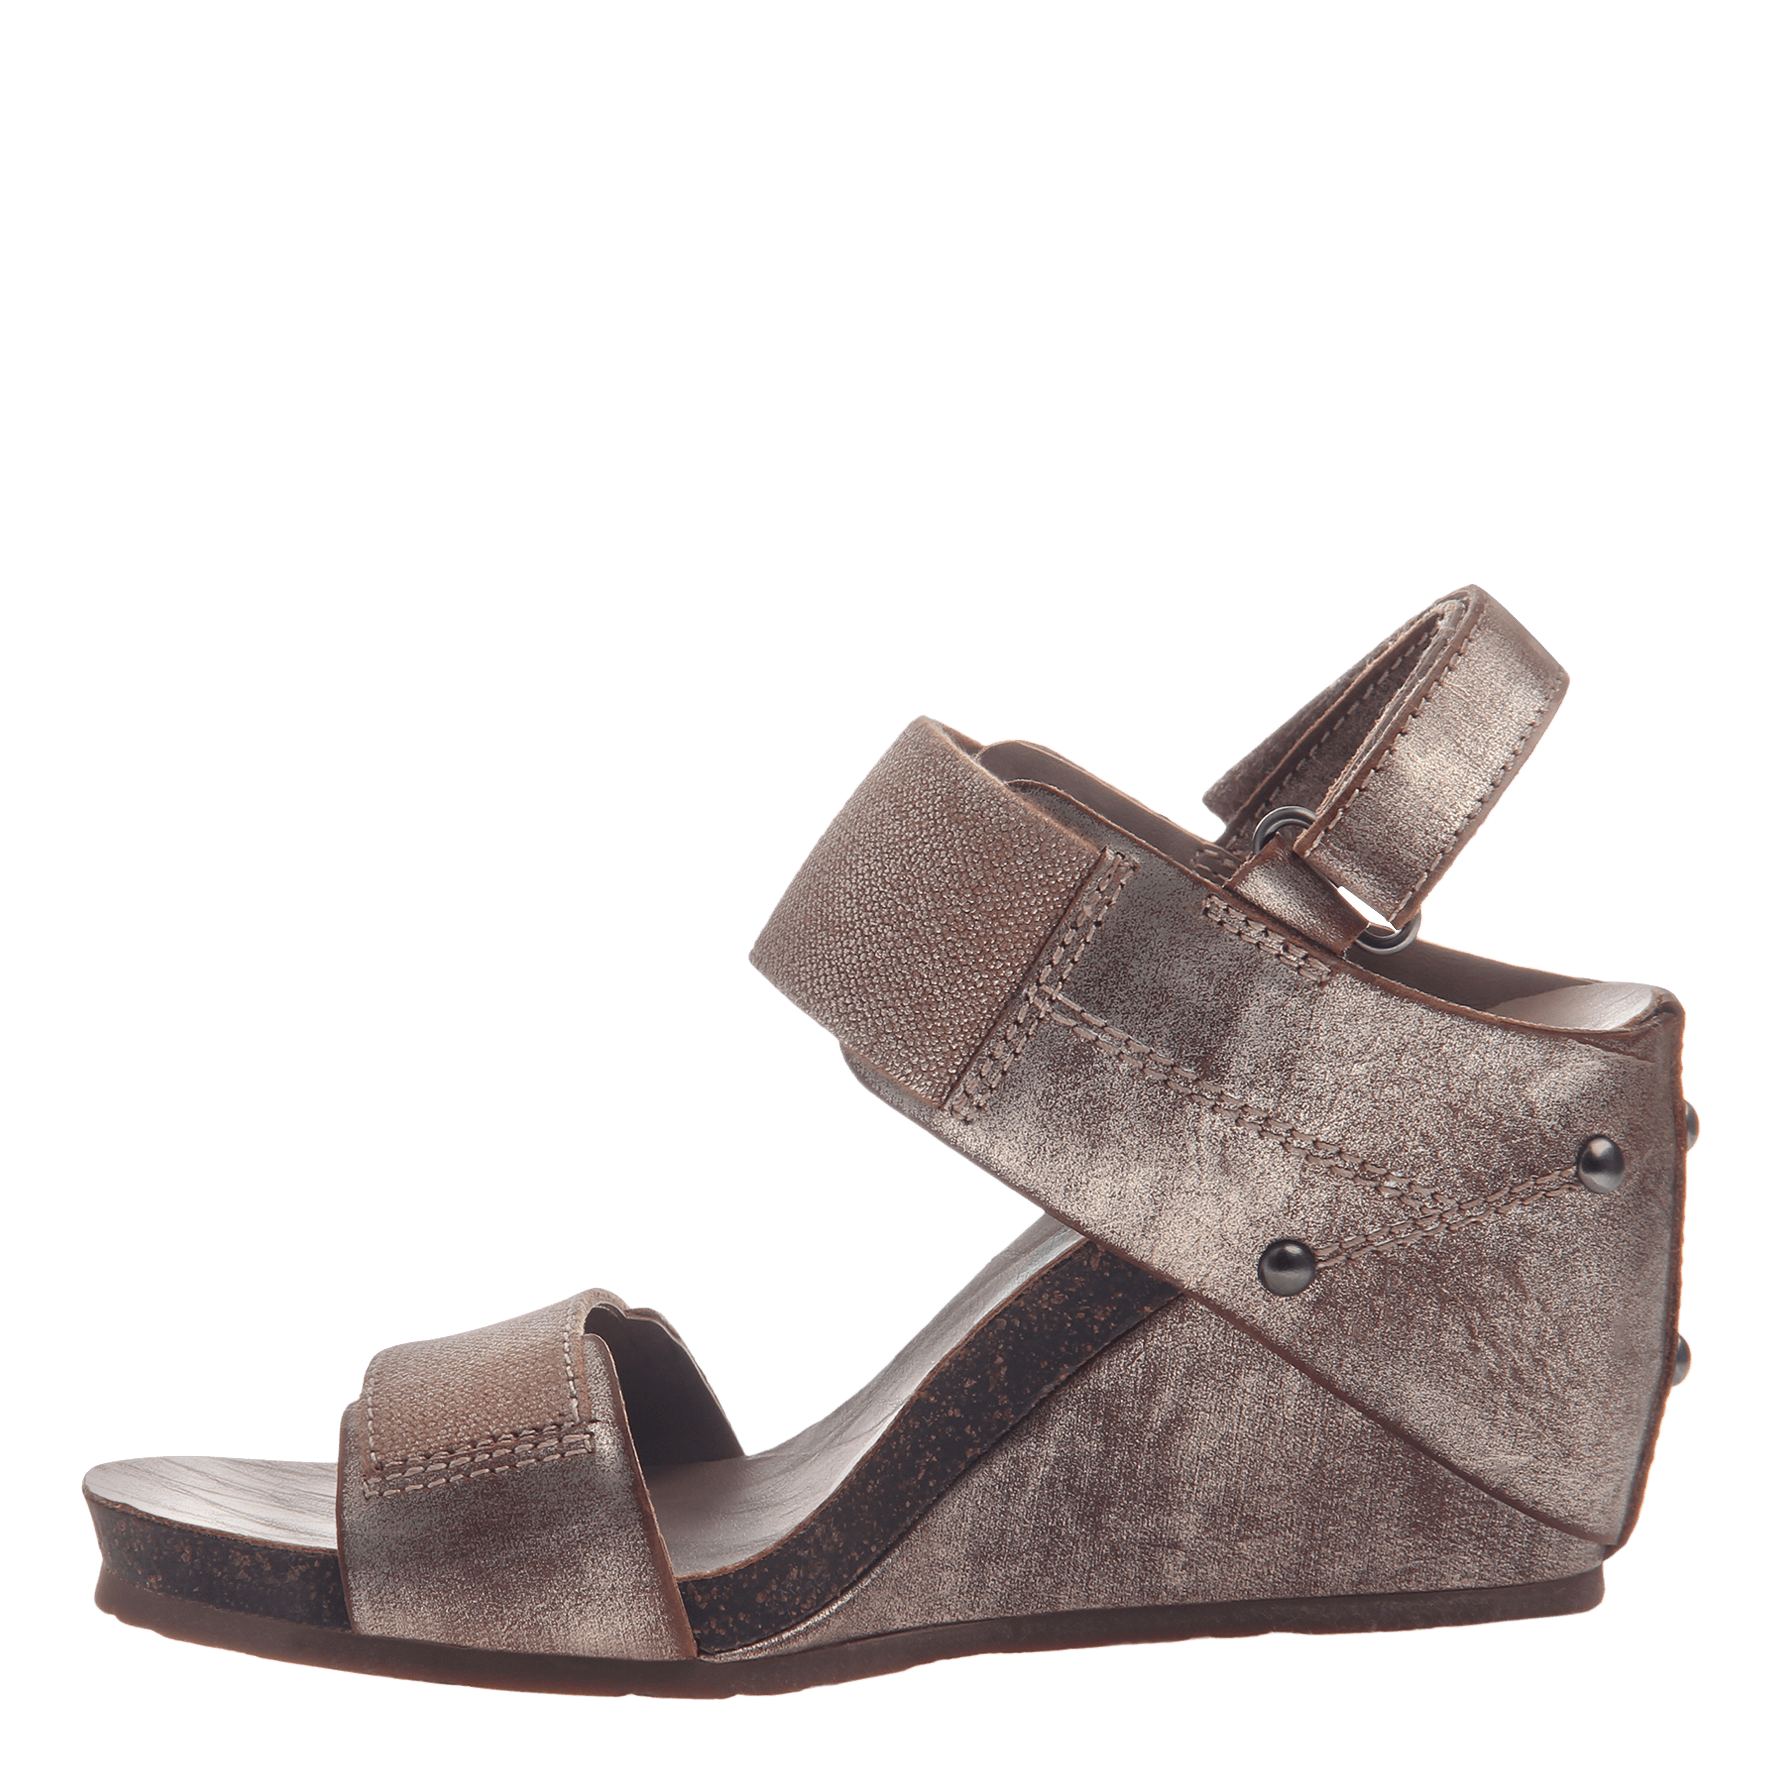 OTBT Women's 'Trailblazer' Wedge Sandal Rx6pOvG